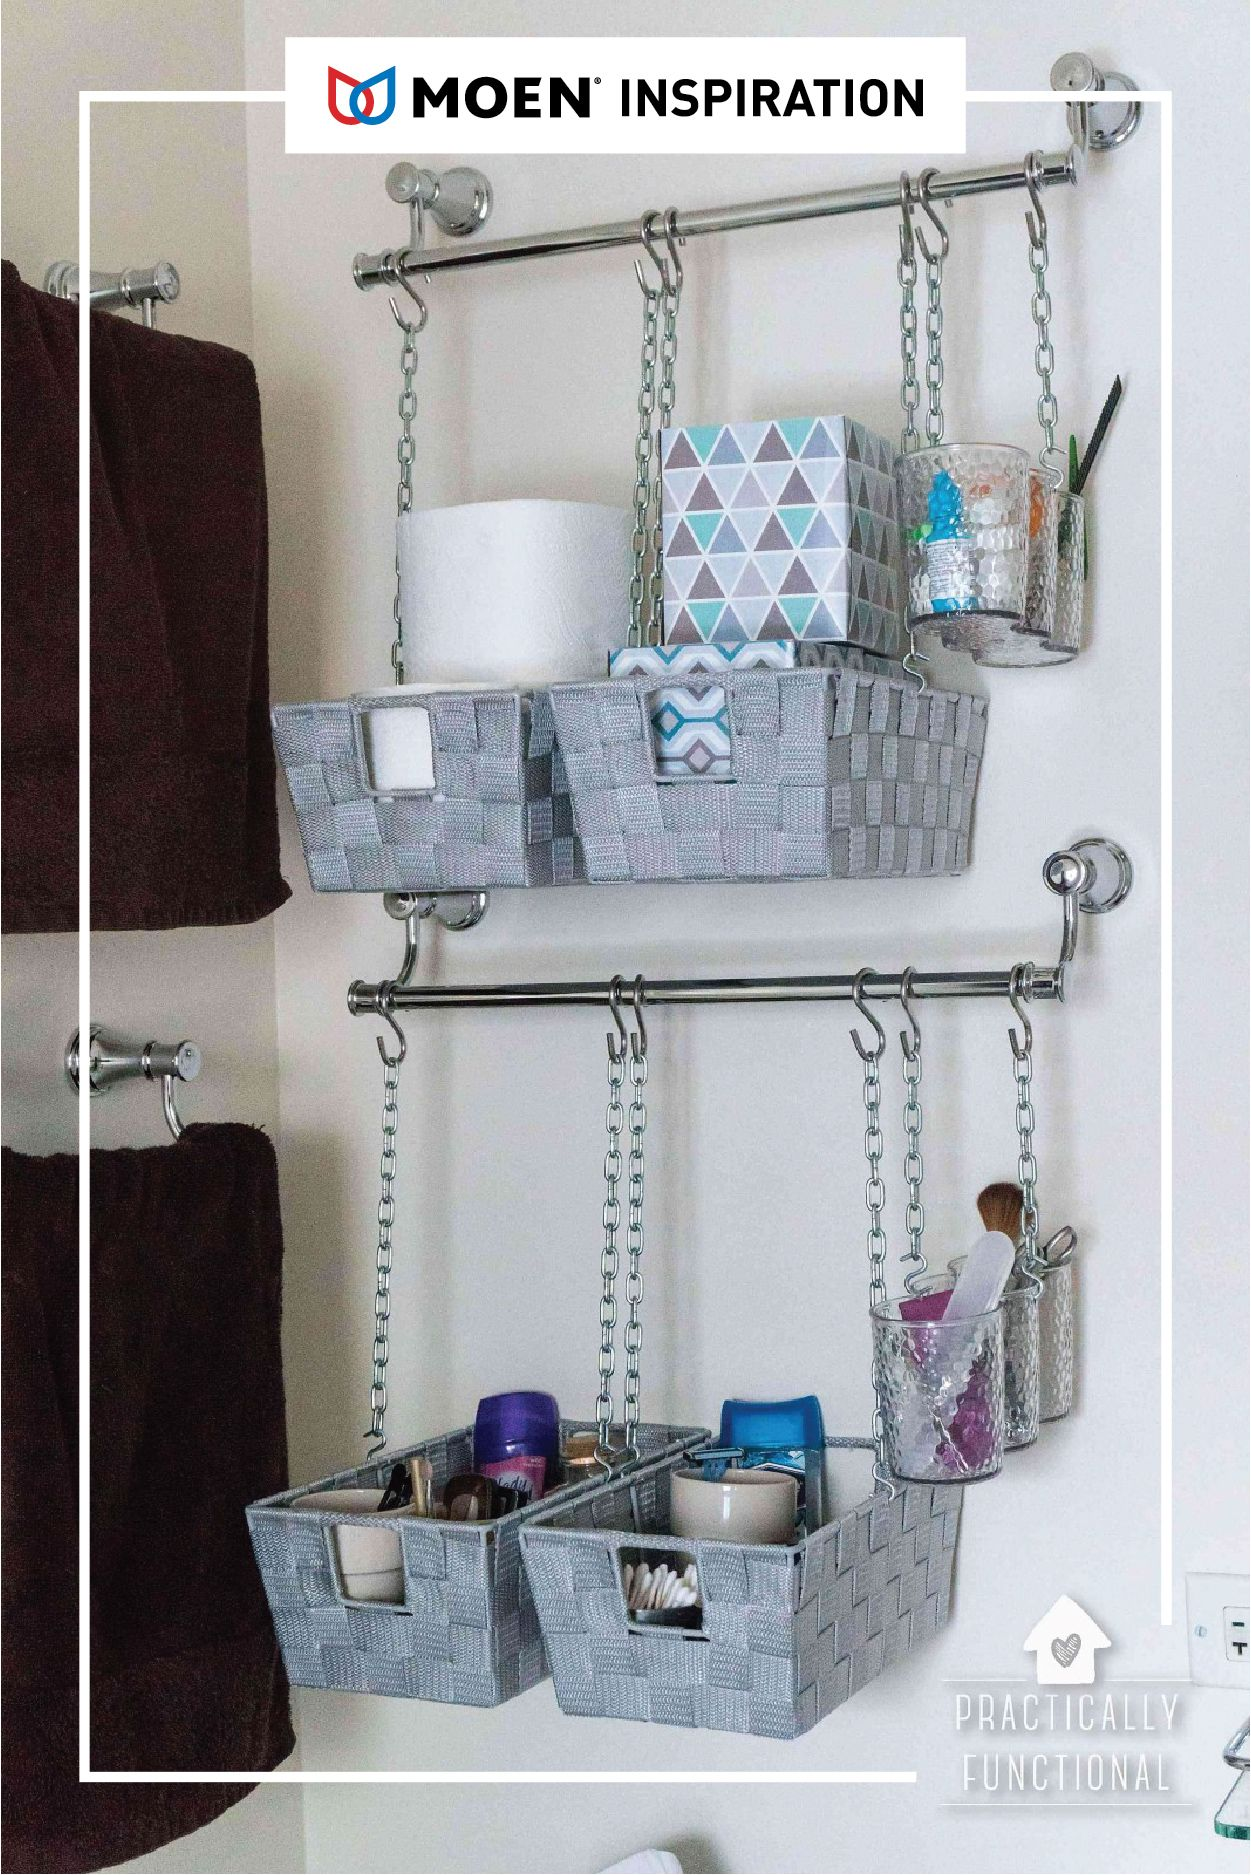 Home Hack For Your Bath Grab One Of Our Towel Bars And Follow